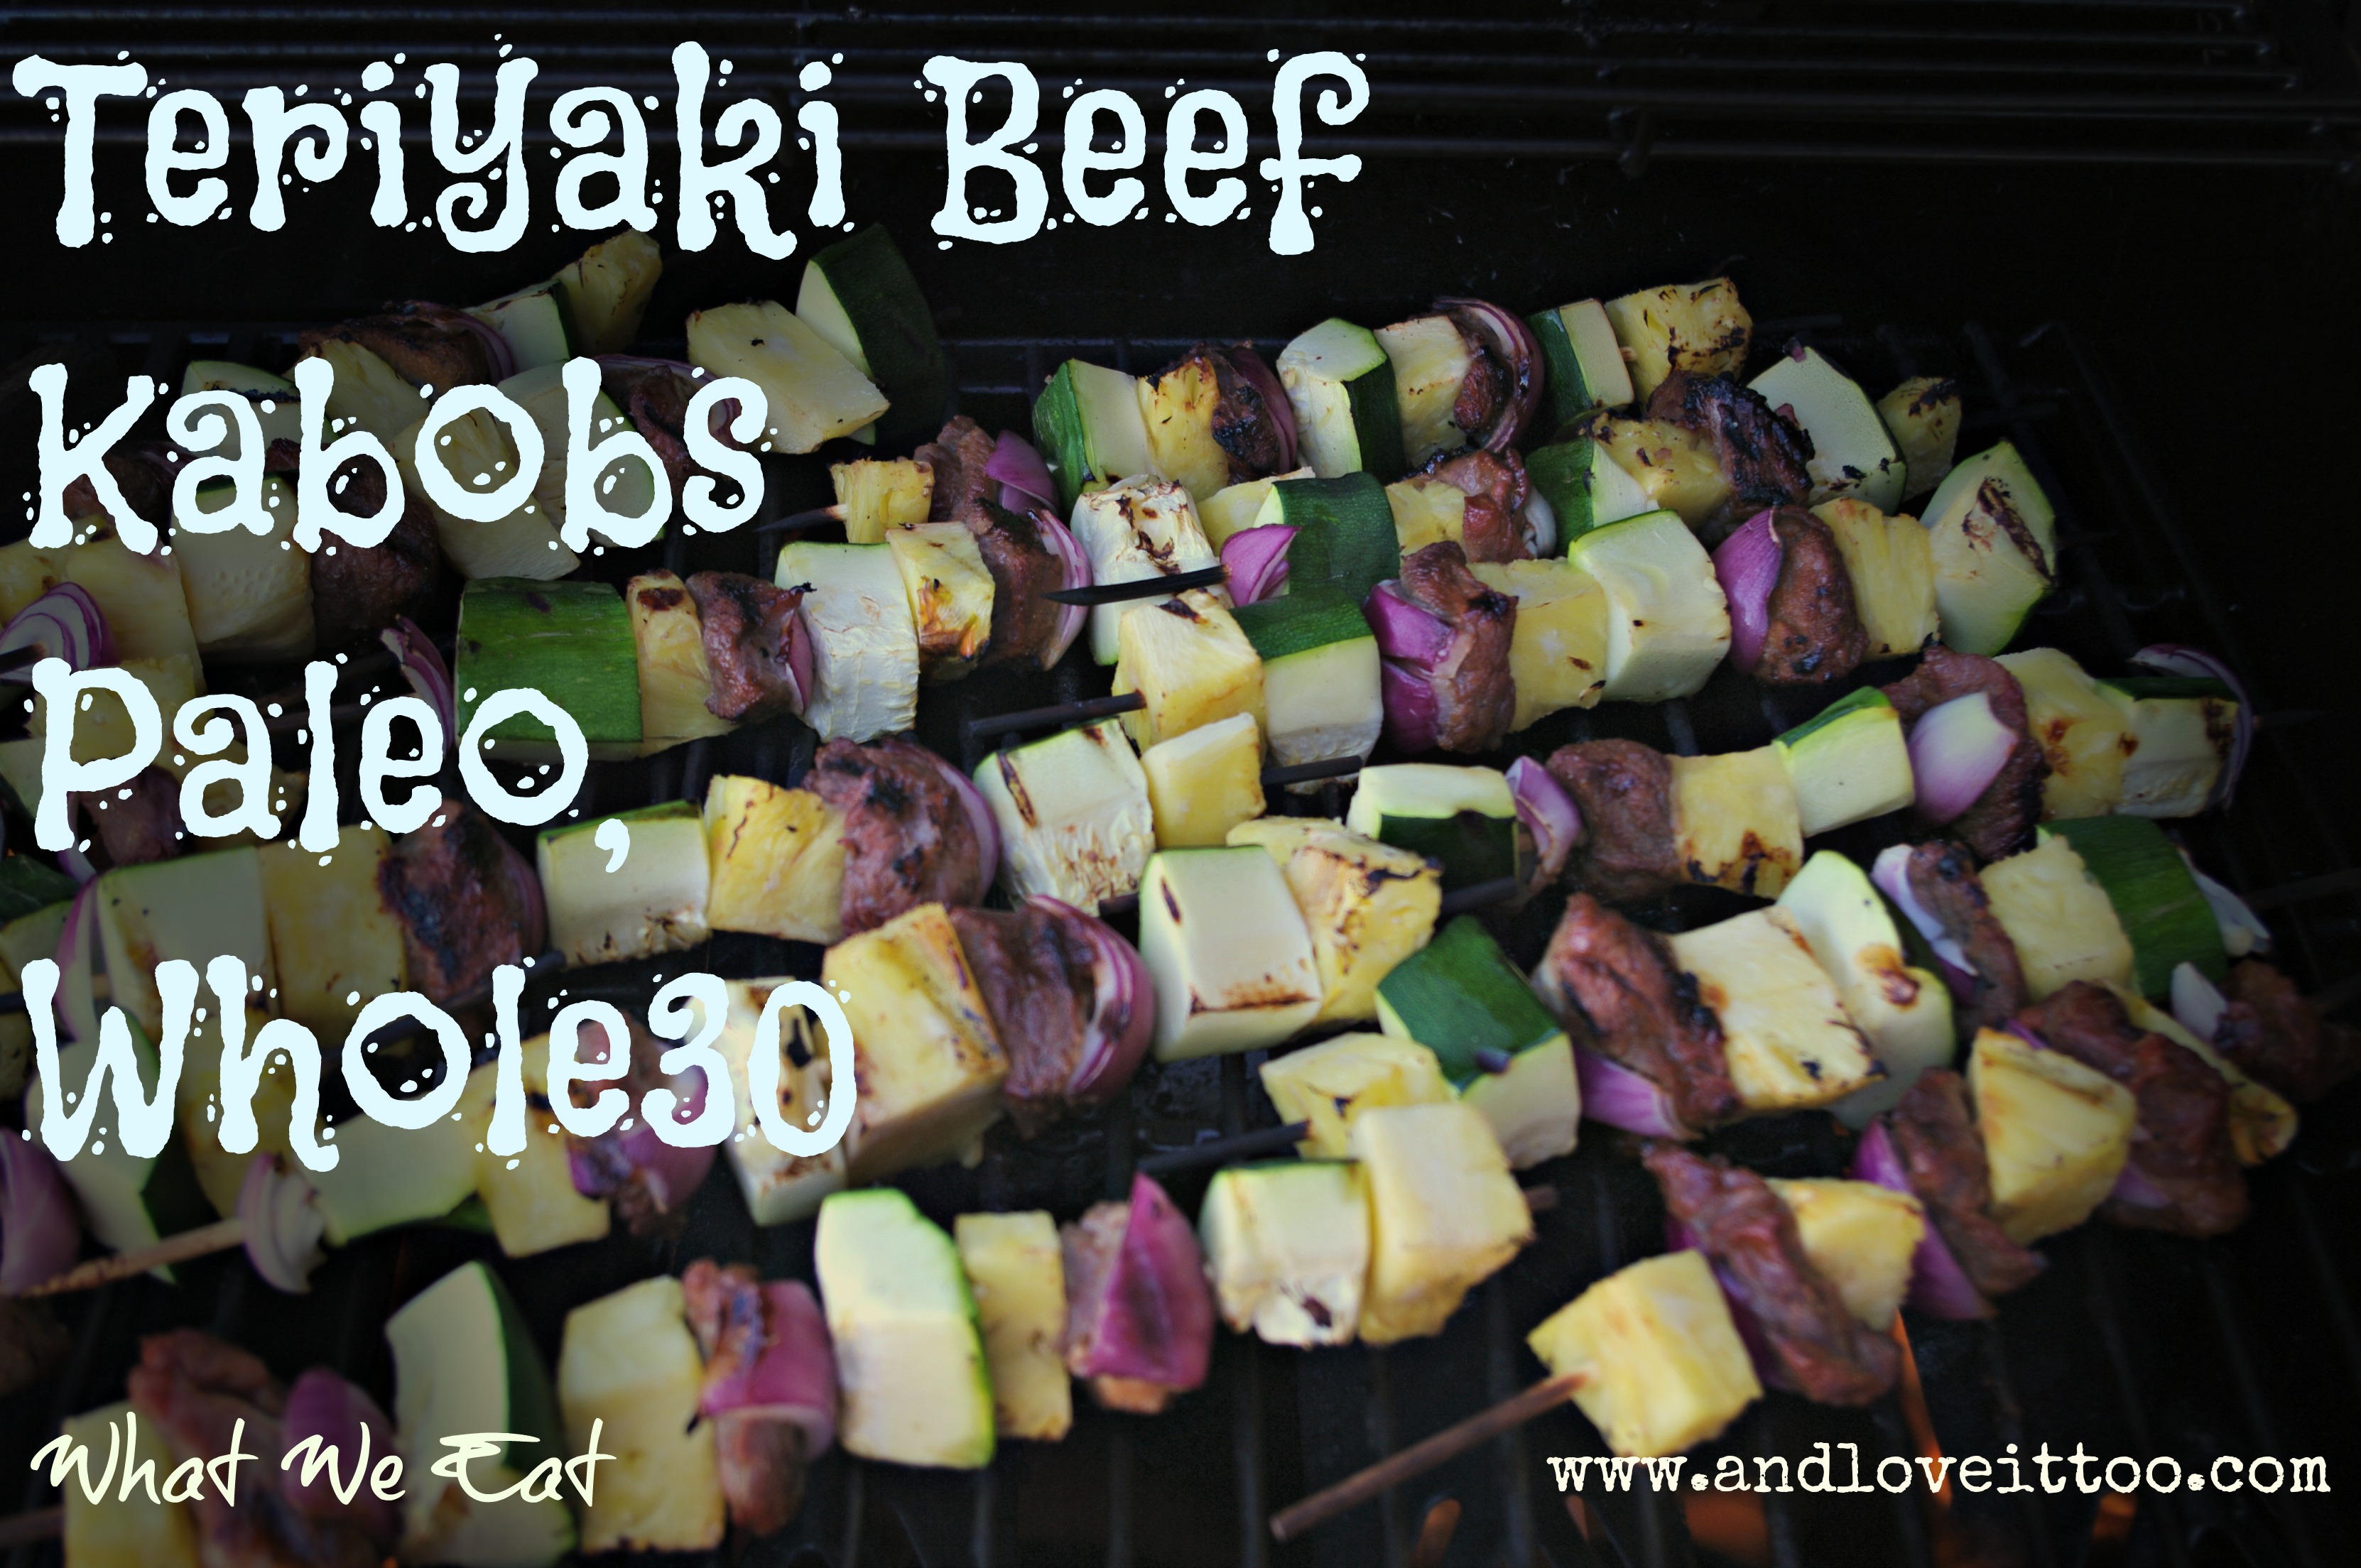 What We Eat: Teriyaki Beef Kabobs (Paleo, Whole30)